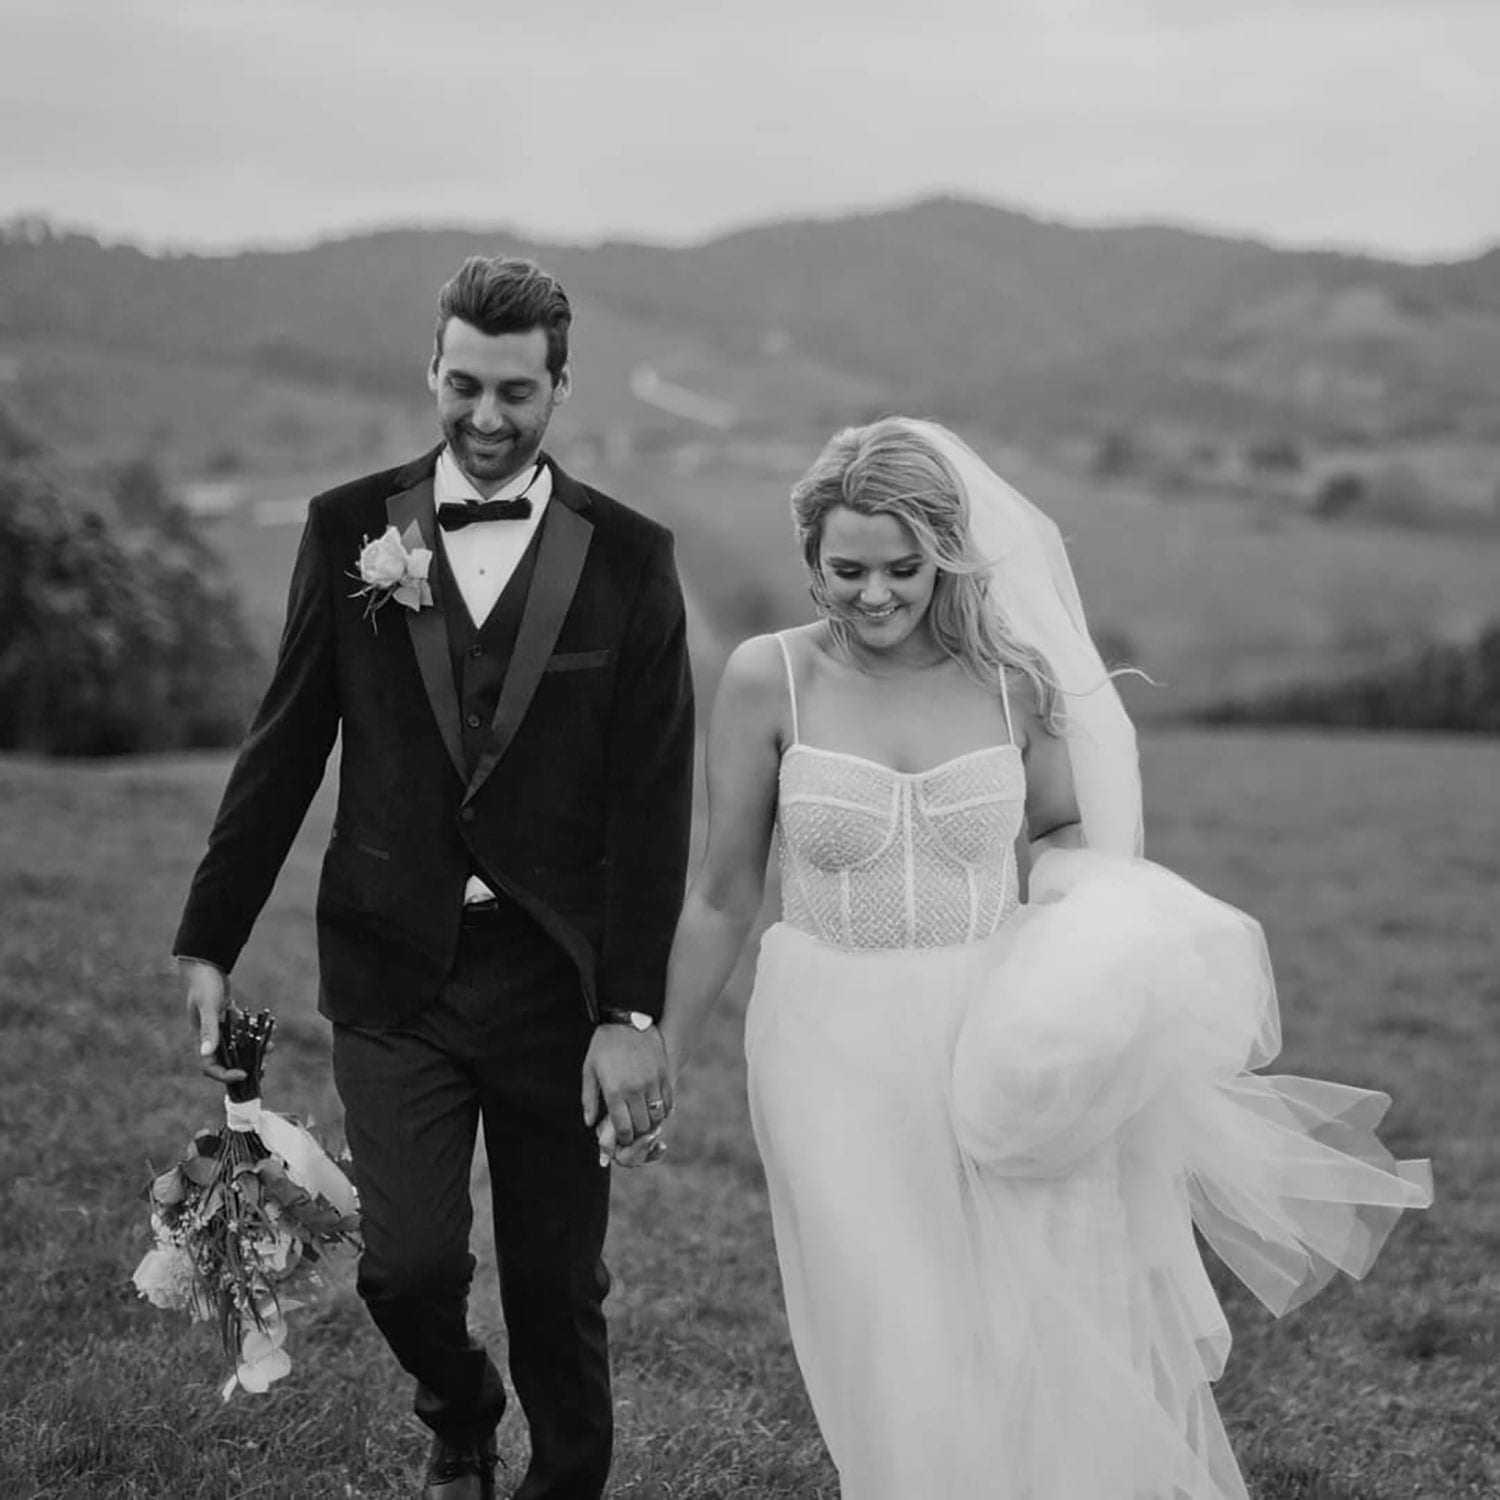 Vinka Design Features Real Weddings - bride wearing custom made gown with two different beadings incorporated into a fitted, structured bodice, and dreamy layered tulle skirt. Bride and groom walk through field in black and white